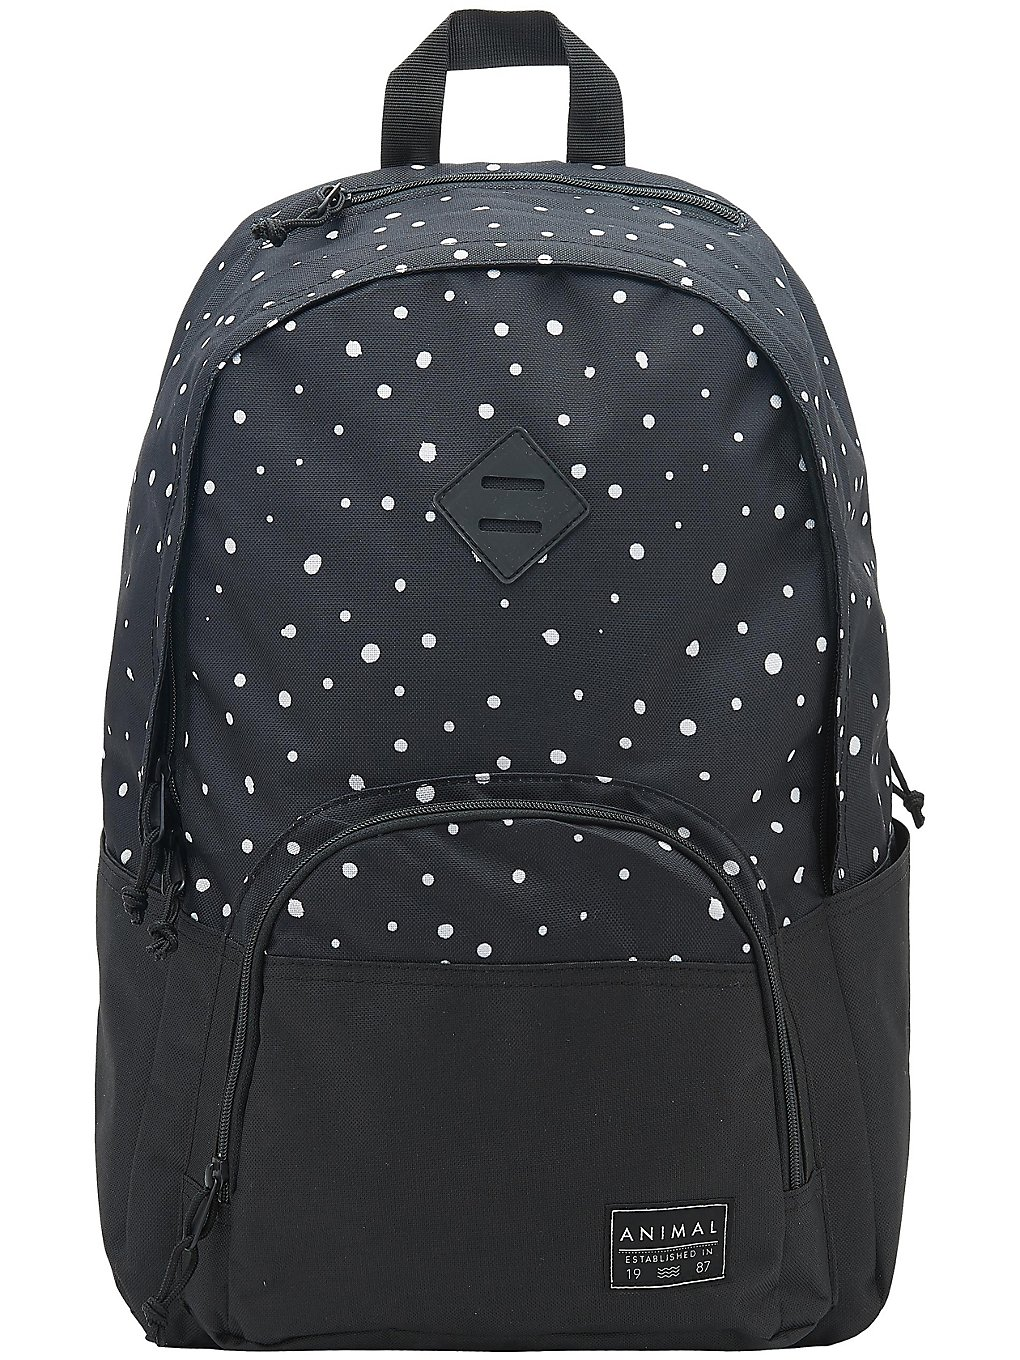 Image of Animal Discover Backpack black Uni